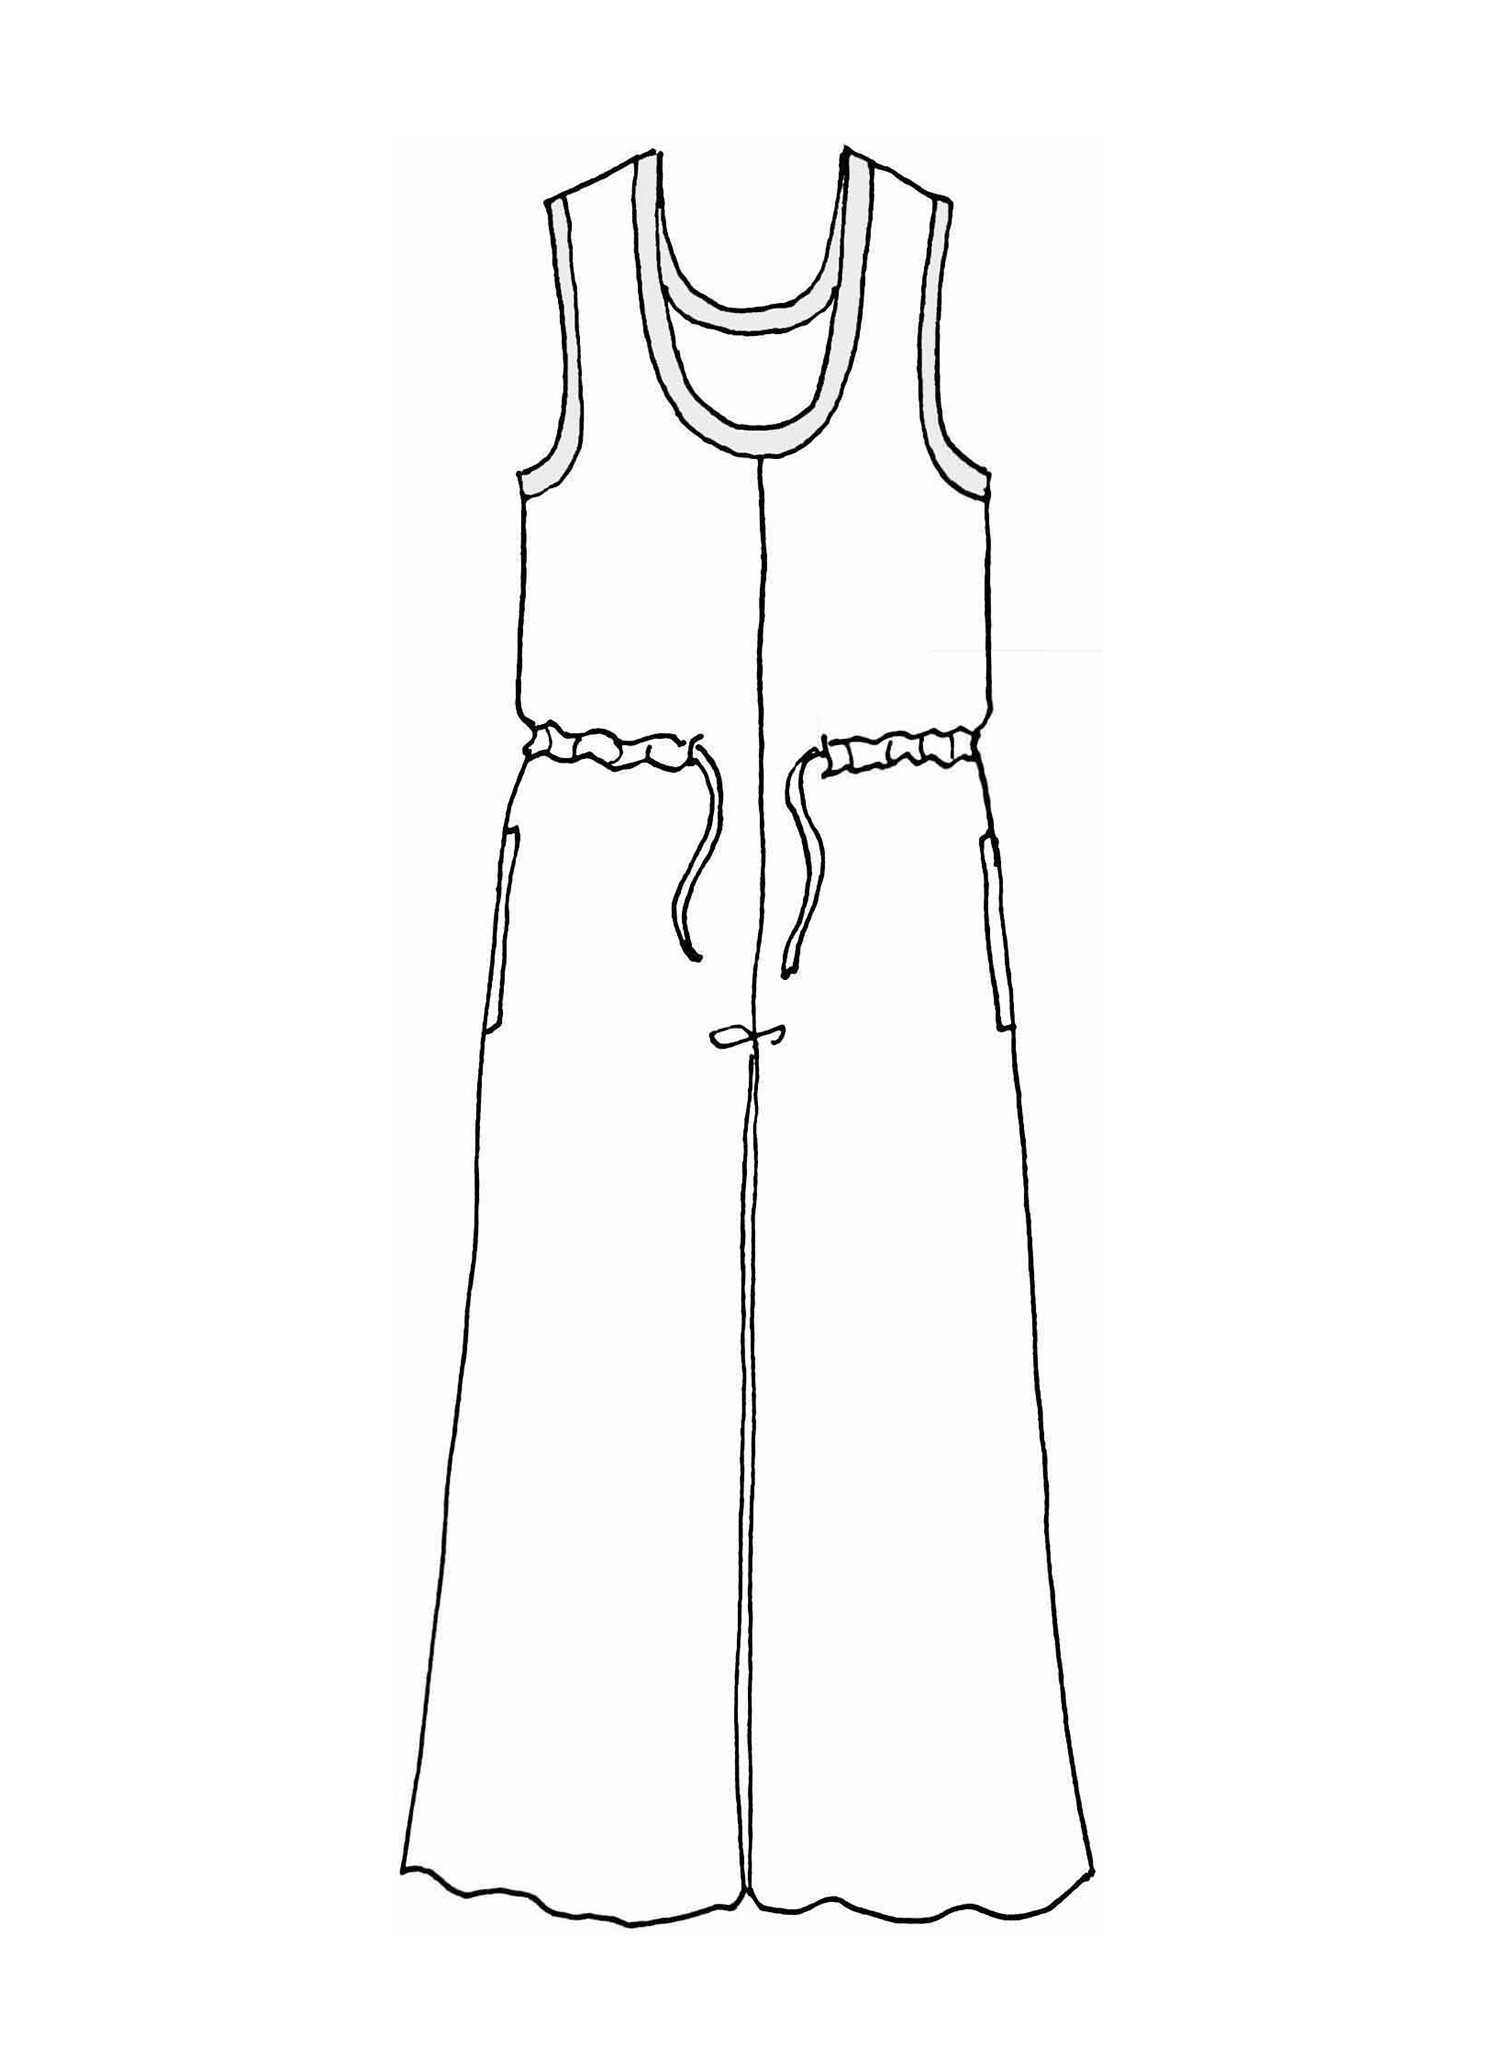 Urban Jumpsuit sketch image